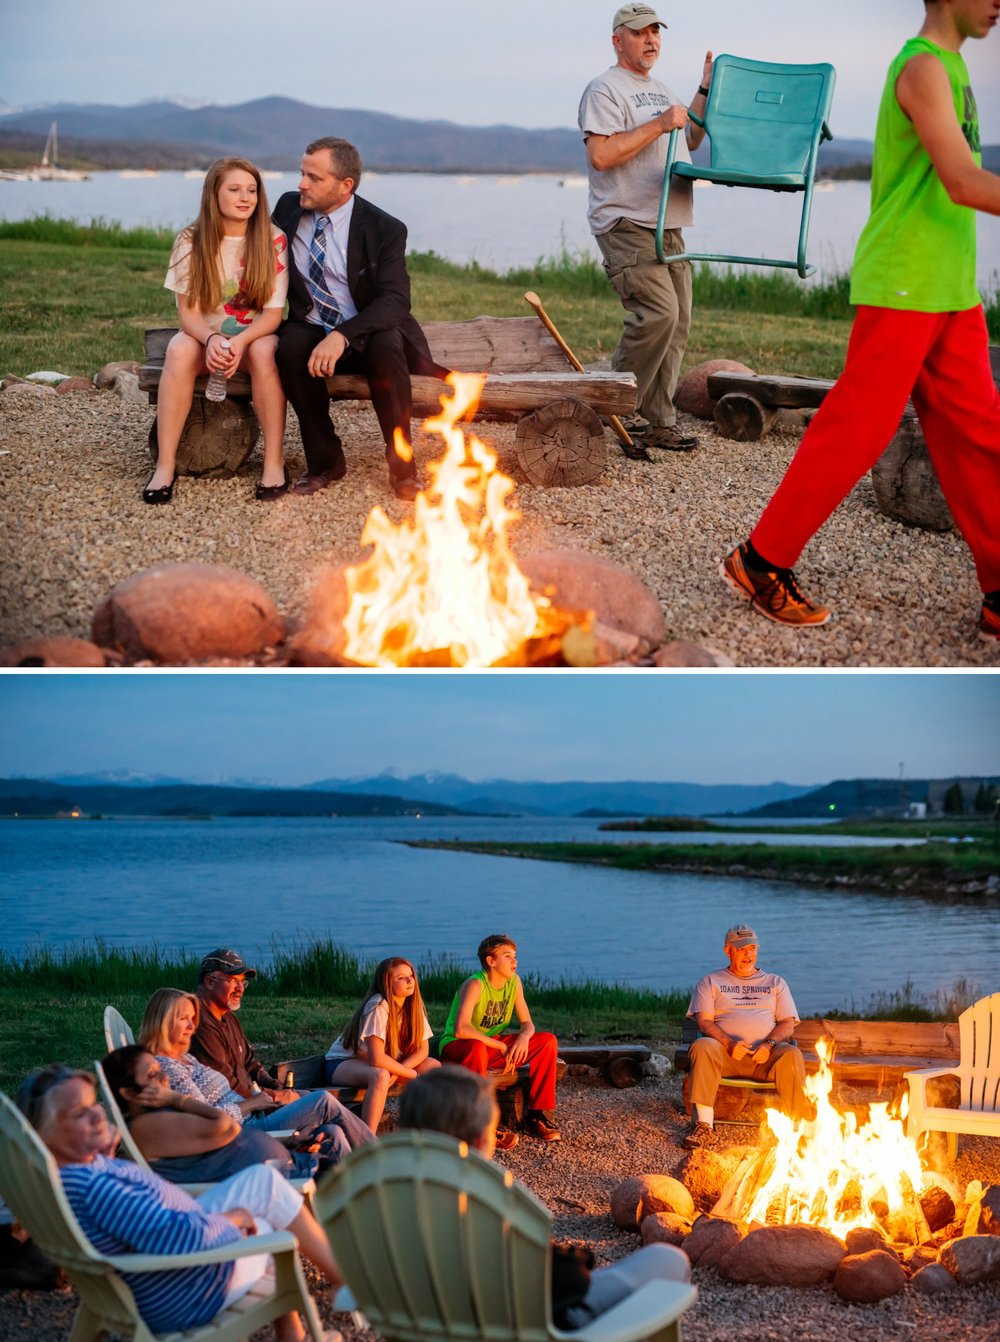 Intimate lake weddings are so beautiful and the campfire is the perfect finishing touch! Photo by Maddie Mae Photography